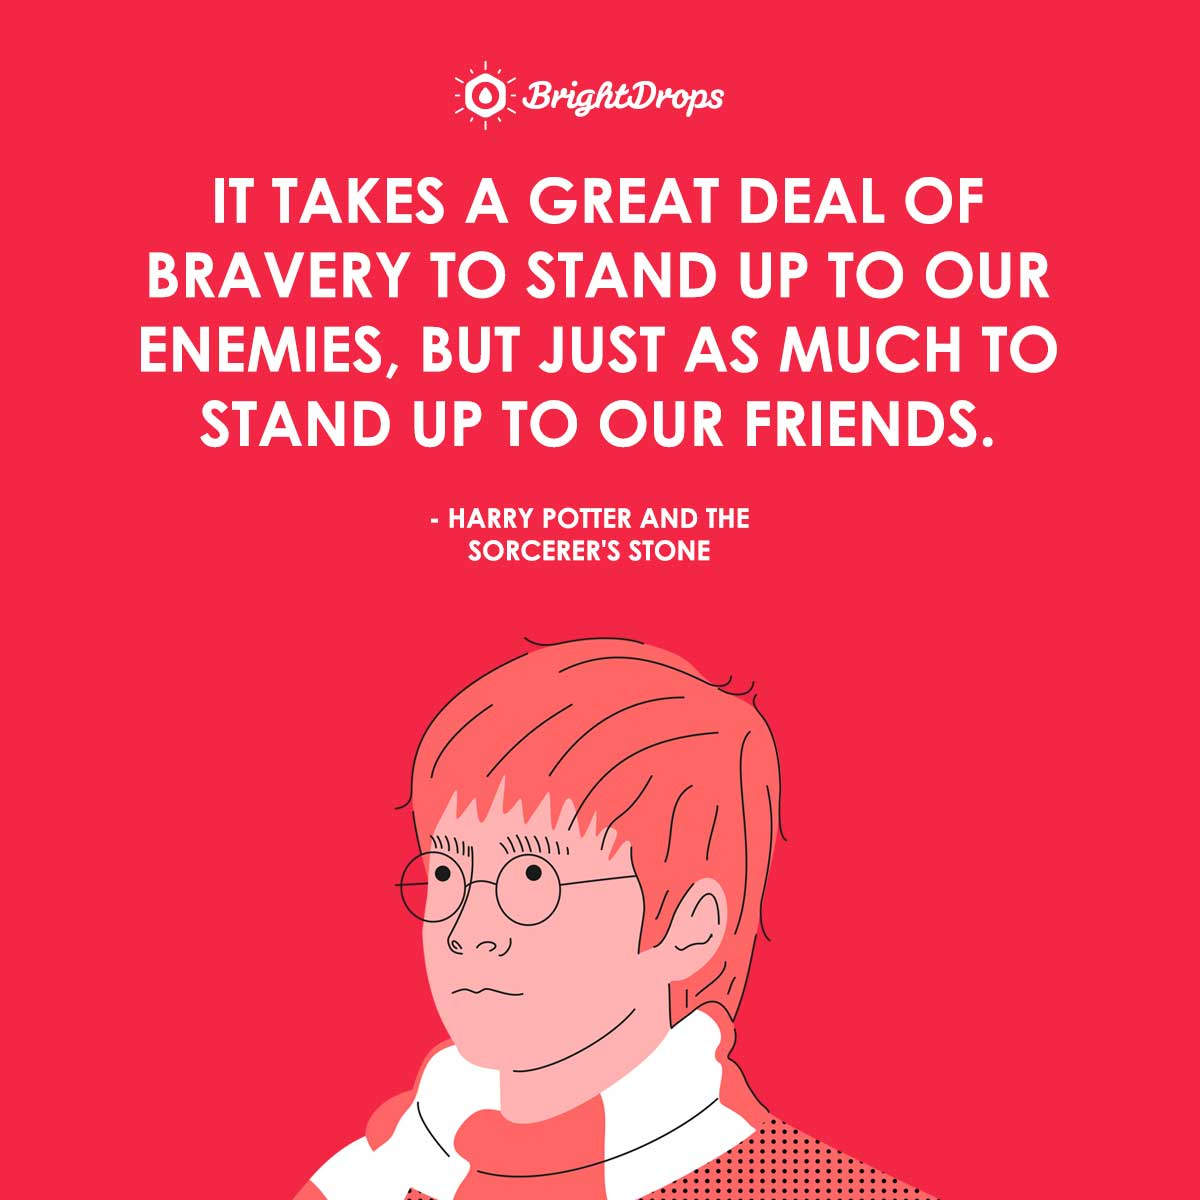 It takes a great deal of bravery to stand up to our enemies, but just as much to stand up to our friends. - Harry Potter and the Sorcerer's Stone